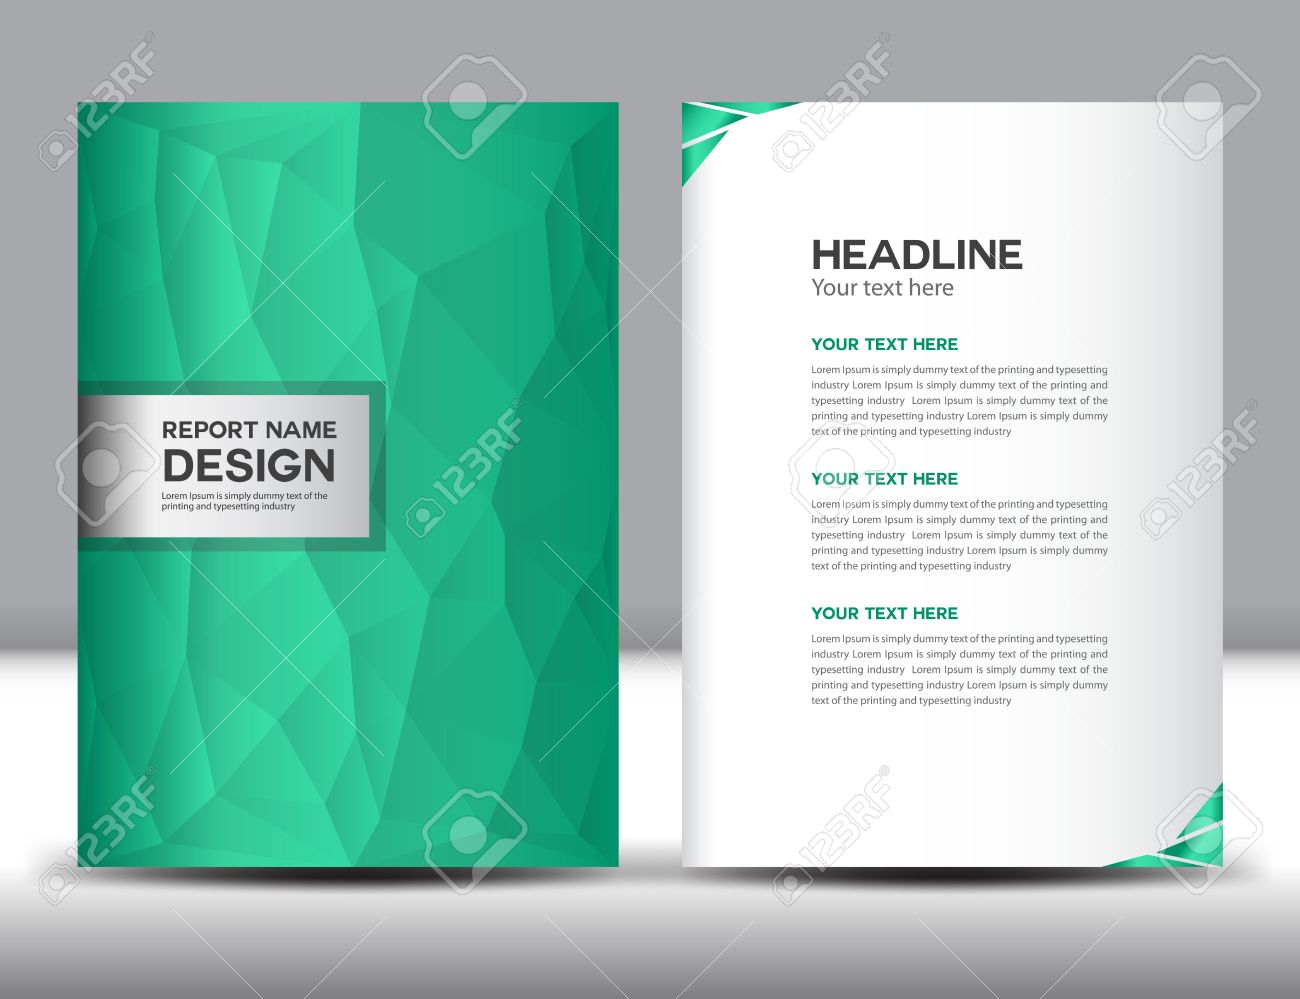 green cover annual report template polygon background brochure green cover annual report template polygon background brochure design cover template design